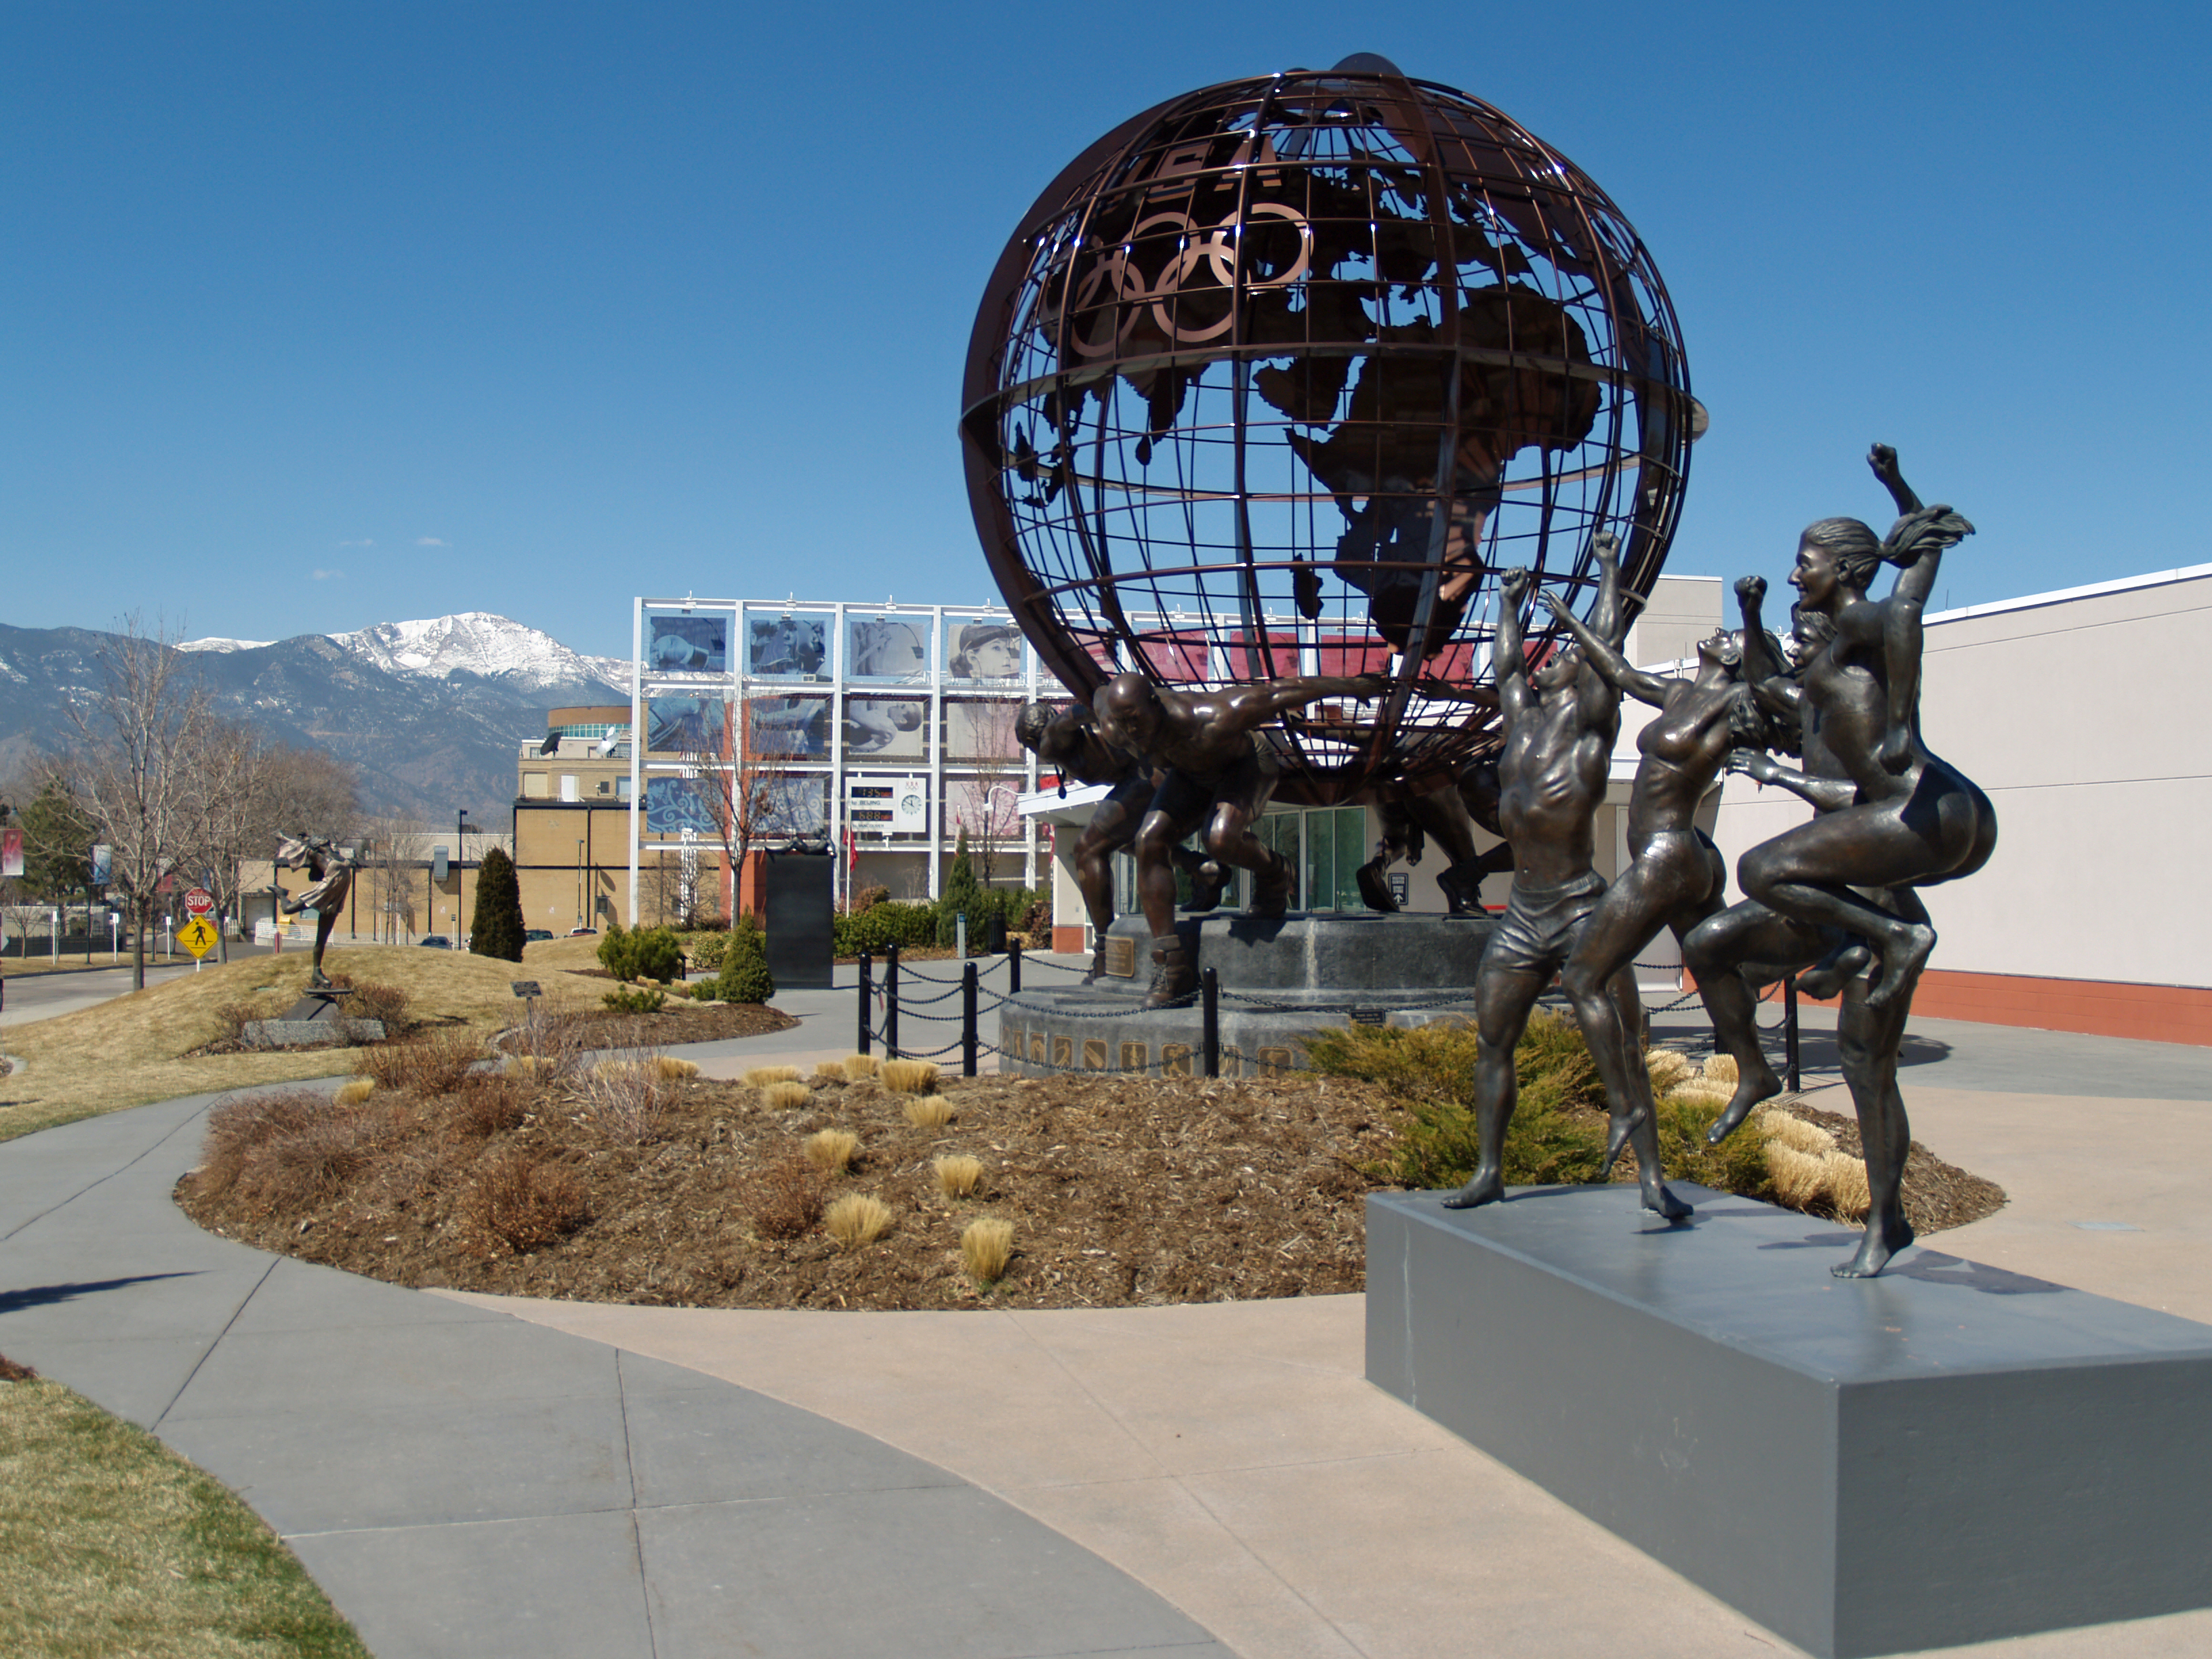 The United States Olympic Committee headquarters and training facility.